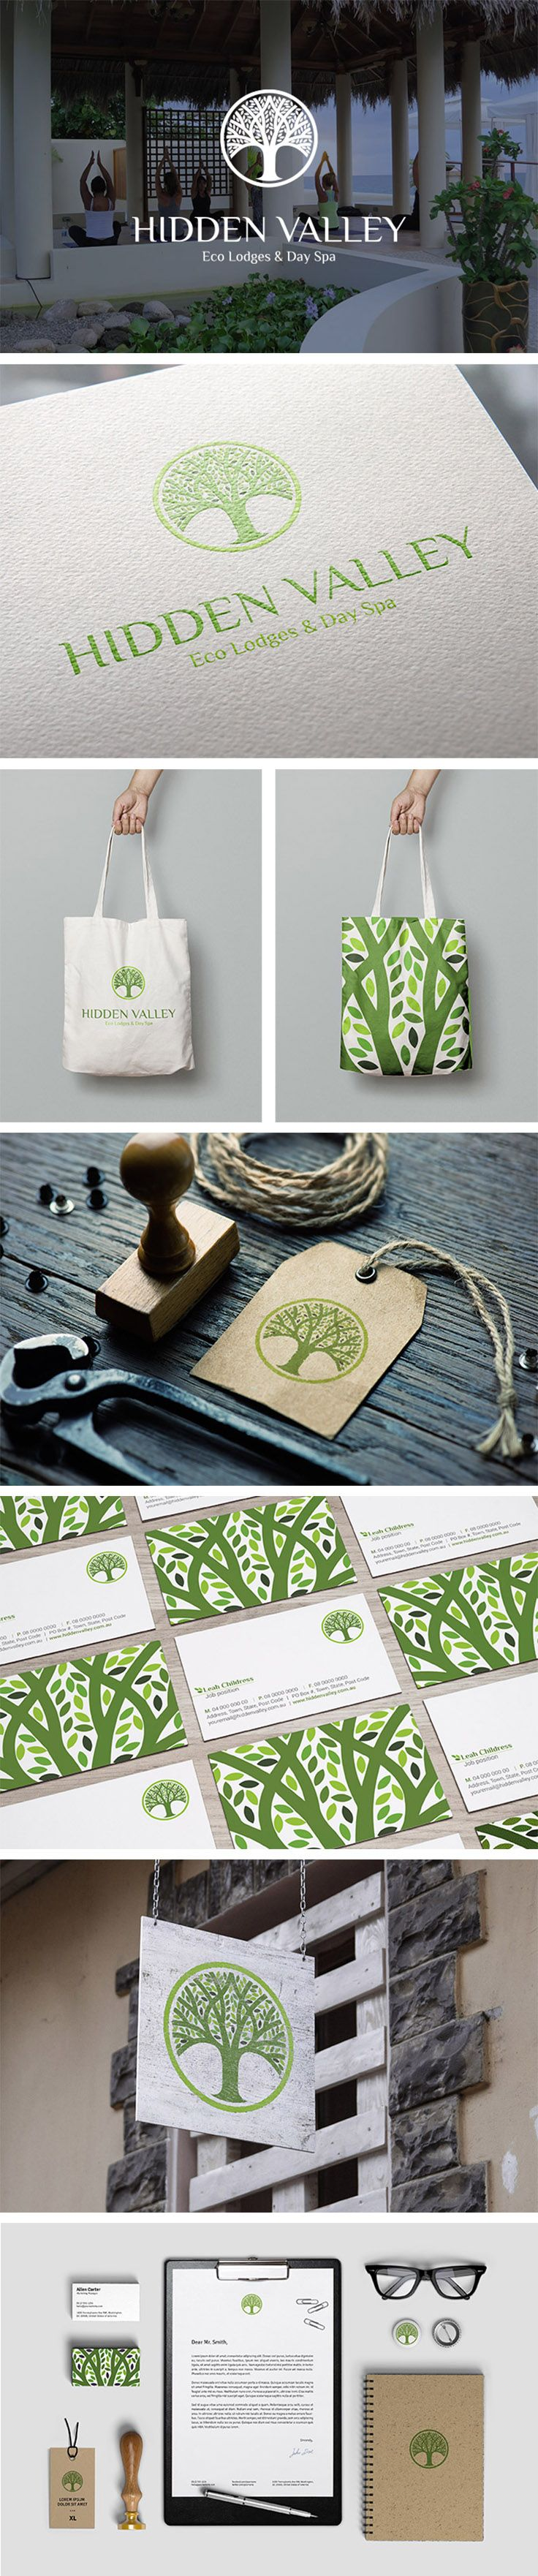 Logo Design Spa Brand Identity Tree Eco Retreat  |  modern, green, zen, circle, yoga, leaf  |  Hidden Valley Eco Lodge, Kalamunda  |  Valhalla Creative Design, Perth